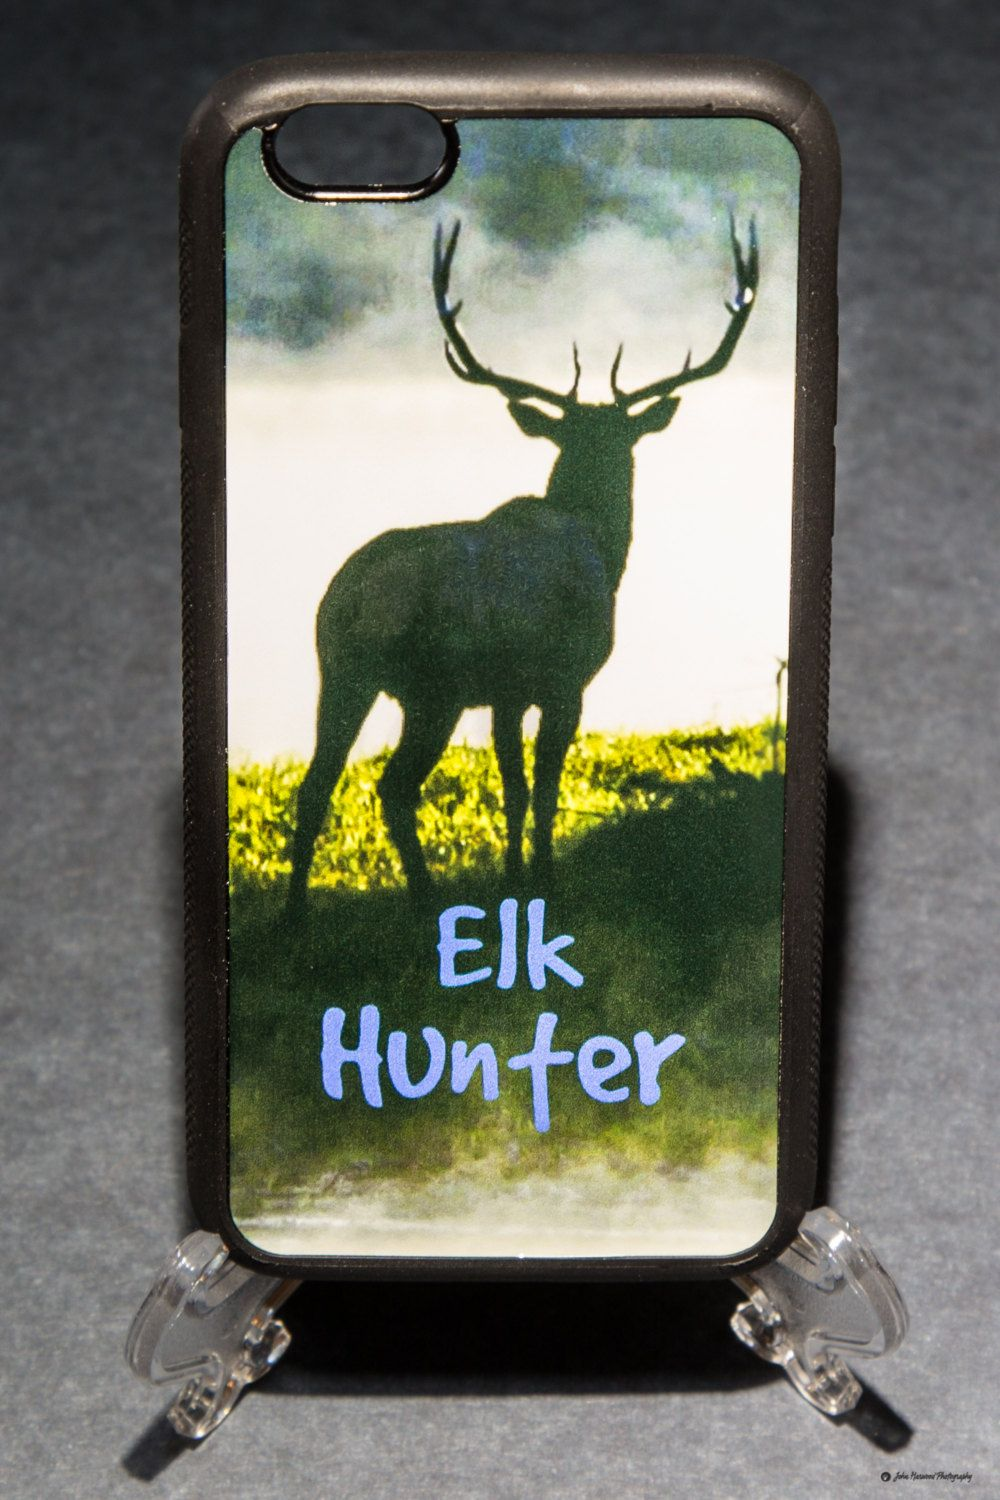 IPhone 6s phone case for your Elk hunter with Bull Elk photo, ON SALE! best selling Items, gifts for hunters, mens accessories, personalized by PicturesFromHeaven on Etsy